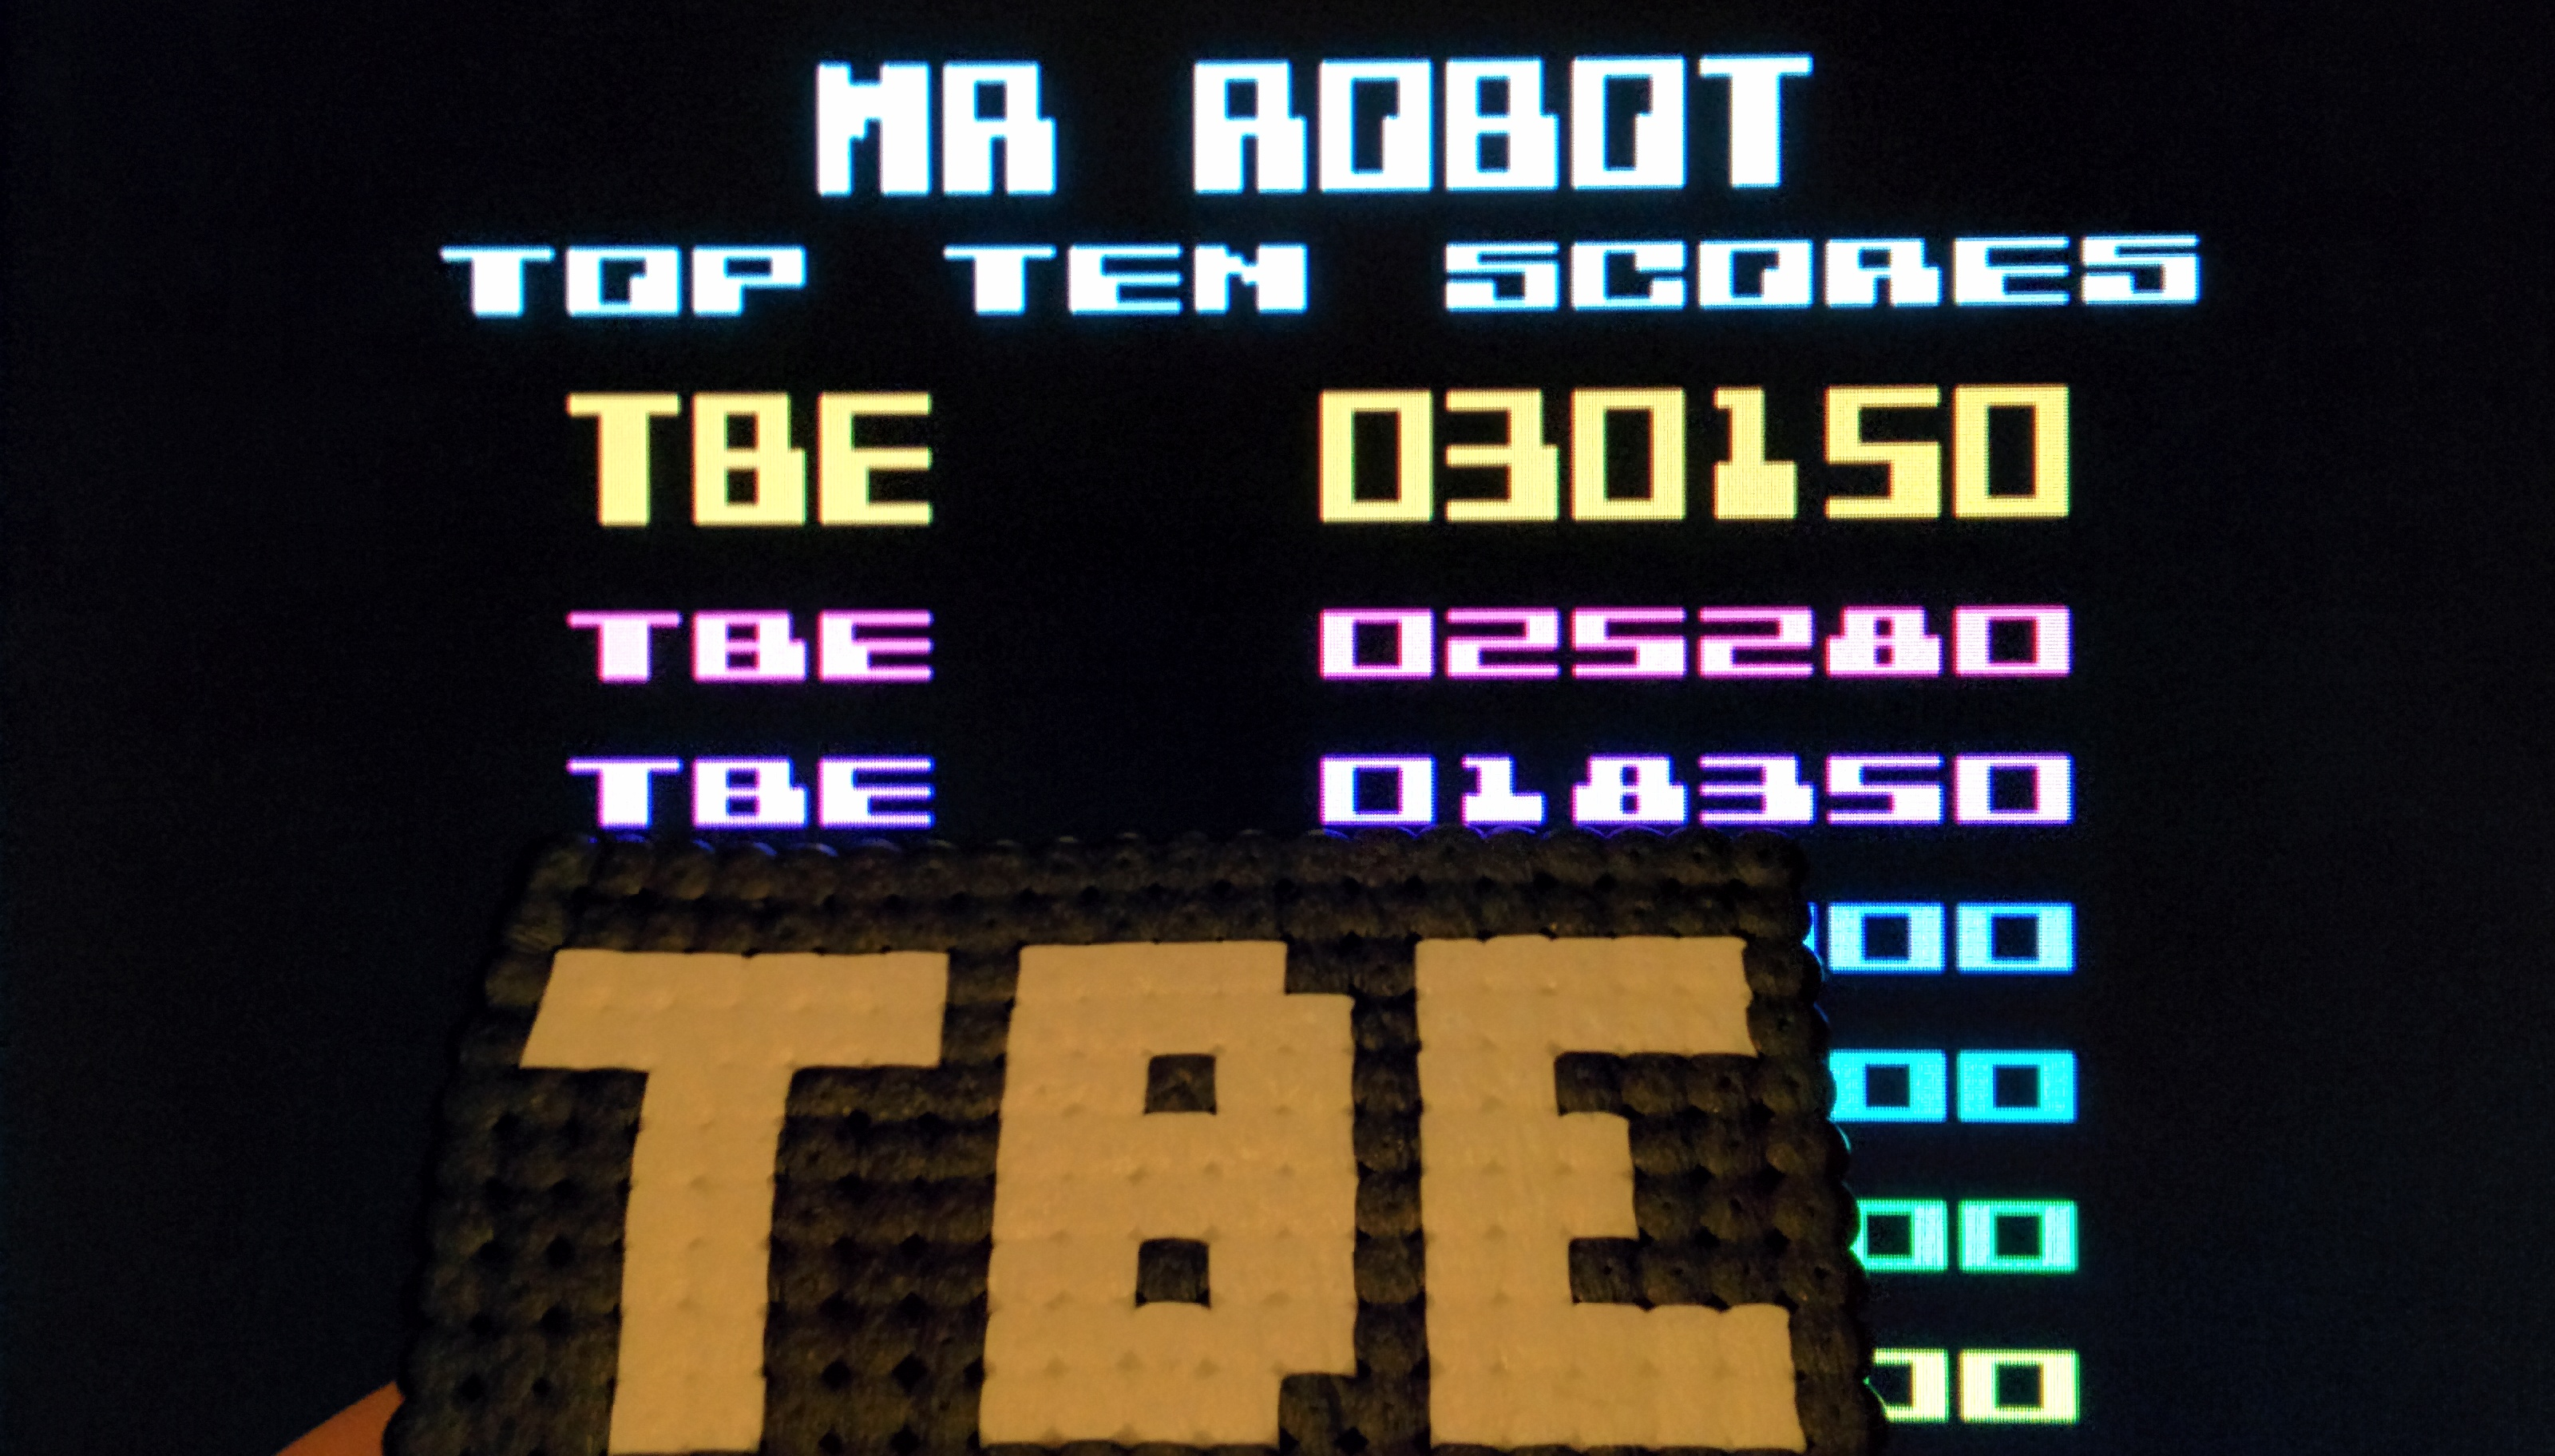 Sixx: Mr. Robot and His Robot Factory (Atari 400/800/XL/XE Emulated) 30,150 points on 2014-10-29 12:44:46